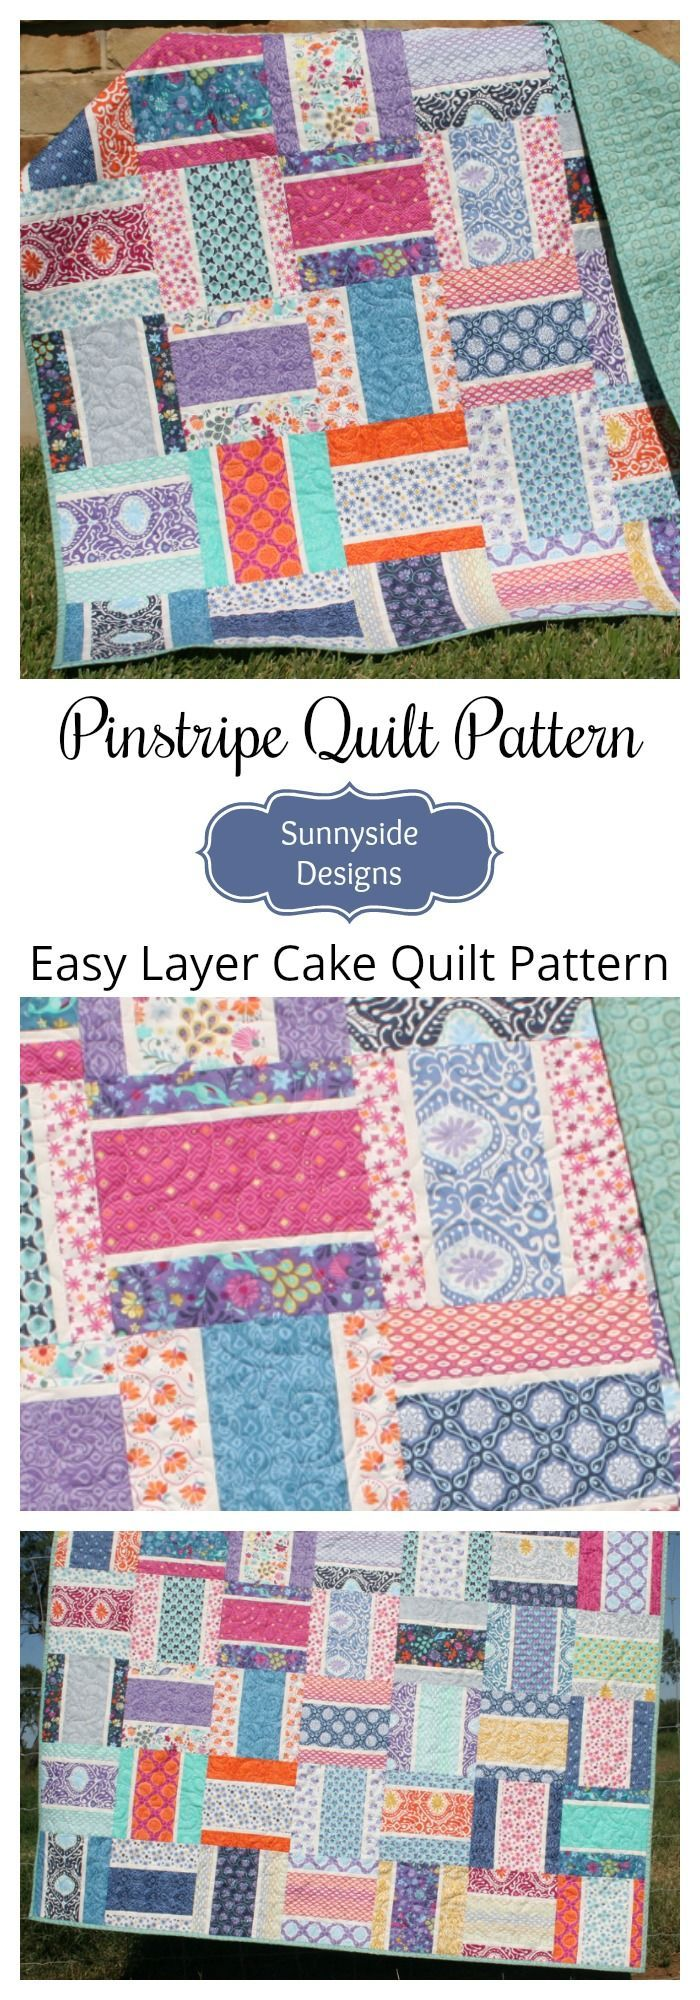 Pinstripe Quilt Pattern - Layer Cake Friendly | Layer cake quilt ... : layer cake friendly quilt patterns - Adamdwight.com